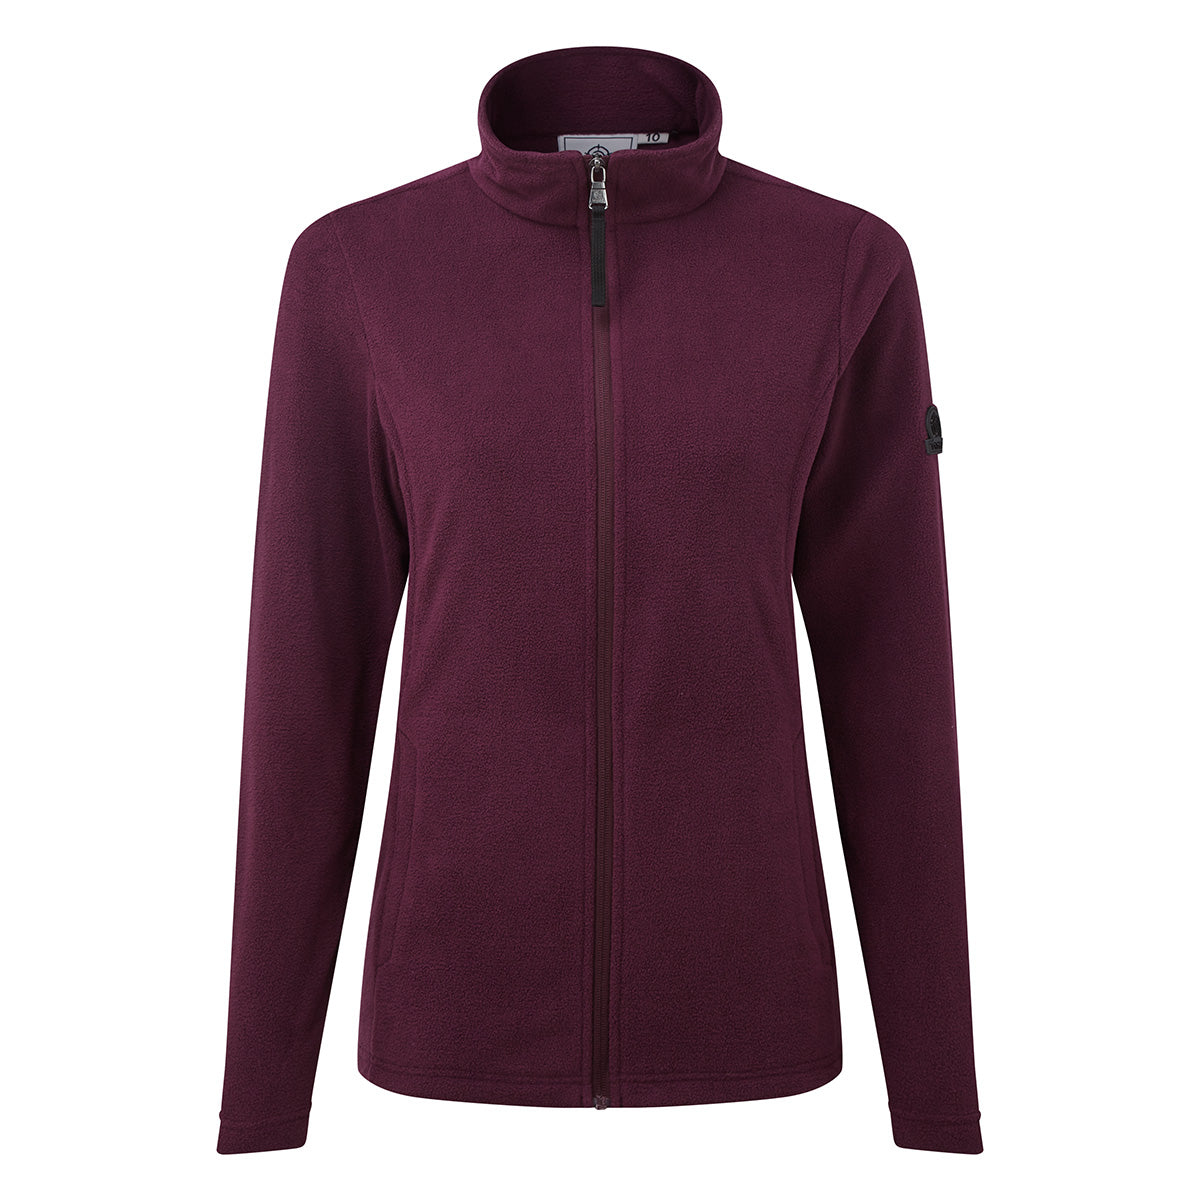 Shire Womens Fleece Jacket - Aubergine